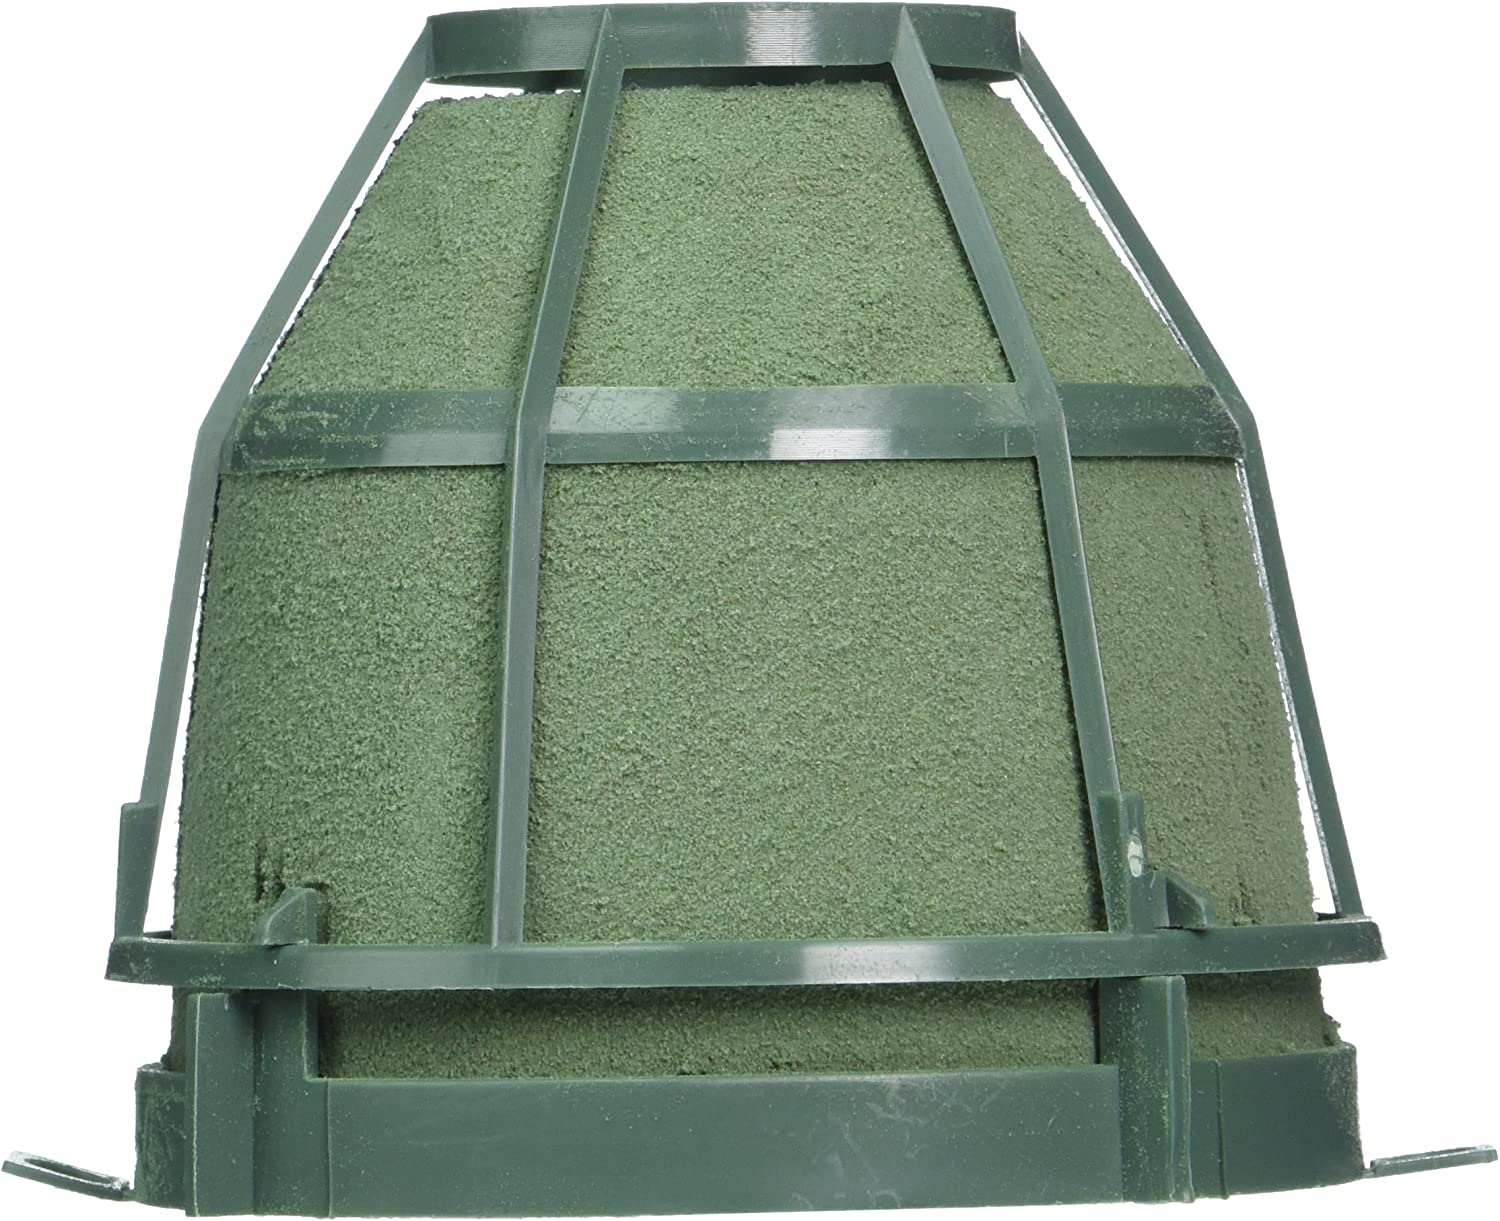 Smithers Oasis Iglu 1020-I Floral Foam /& Holder Green Pack of 12